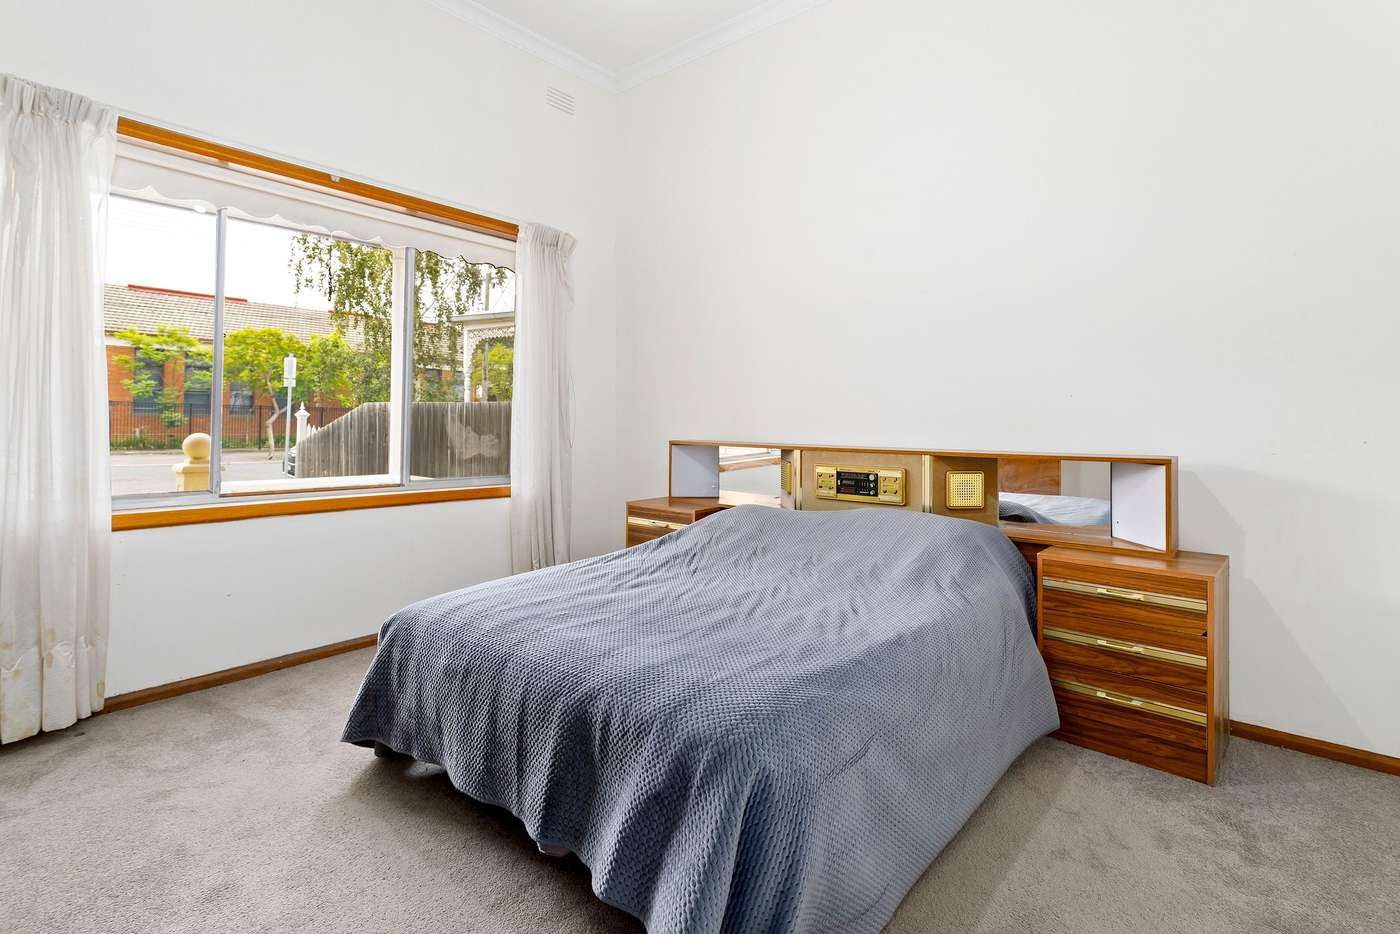 Fifth view of Homely house listing, 87 Roseberry Street, Ascot Vale VIC 3032